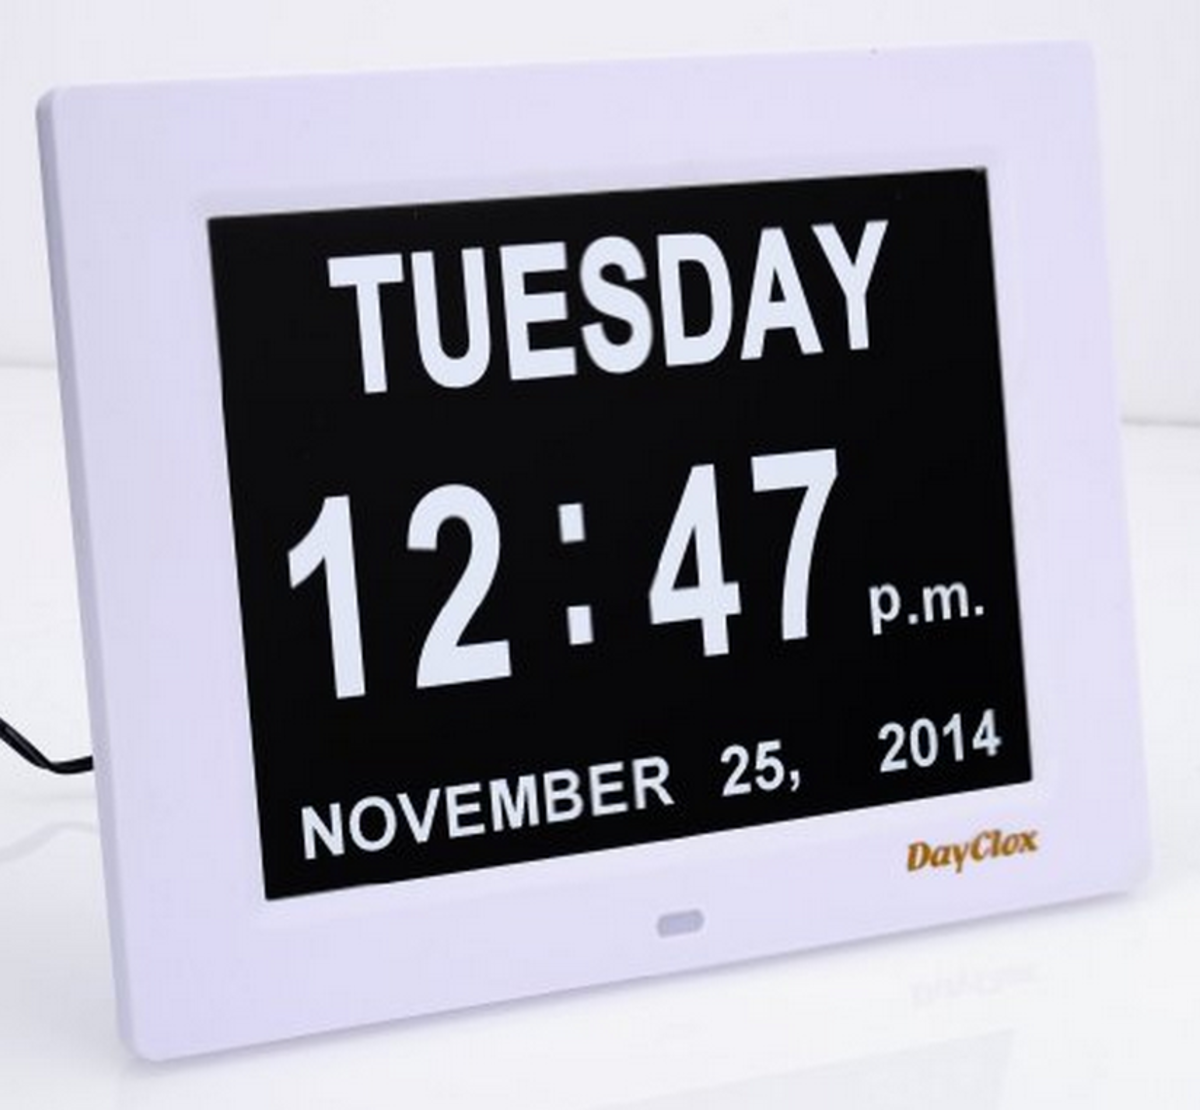 Click the link in the text to the left to see this and other day clocks.